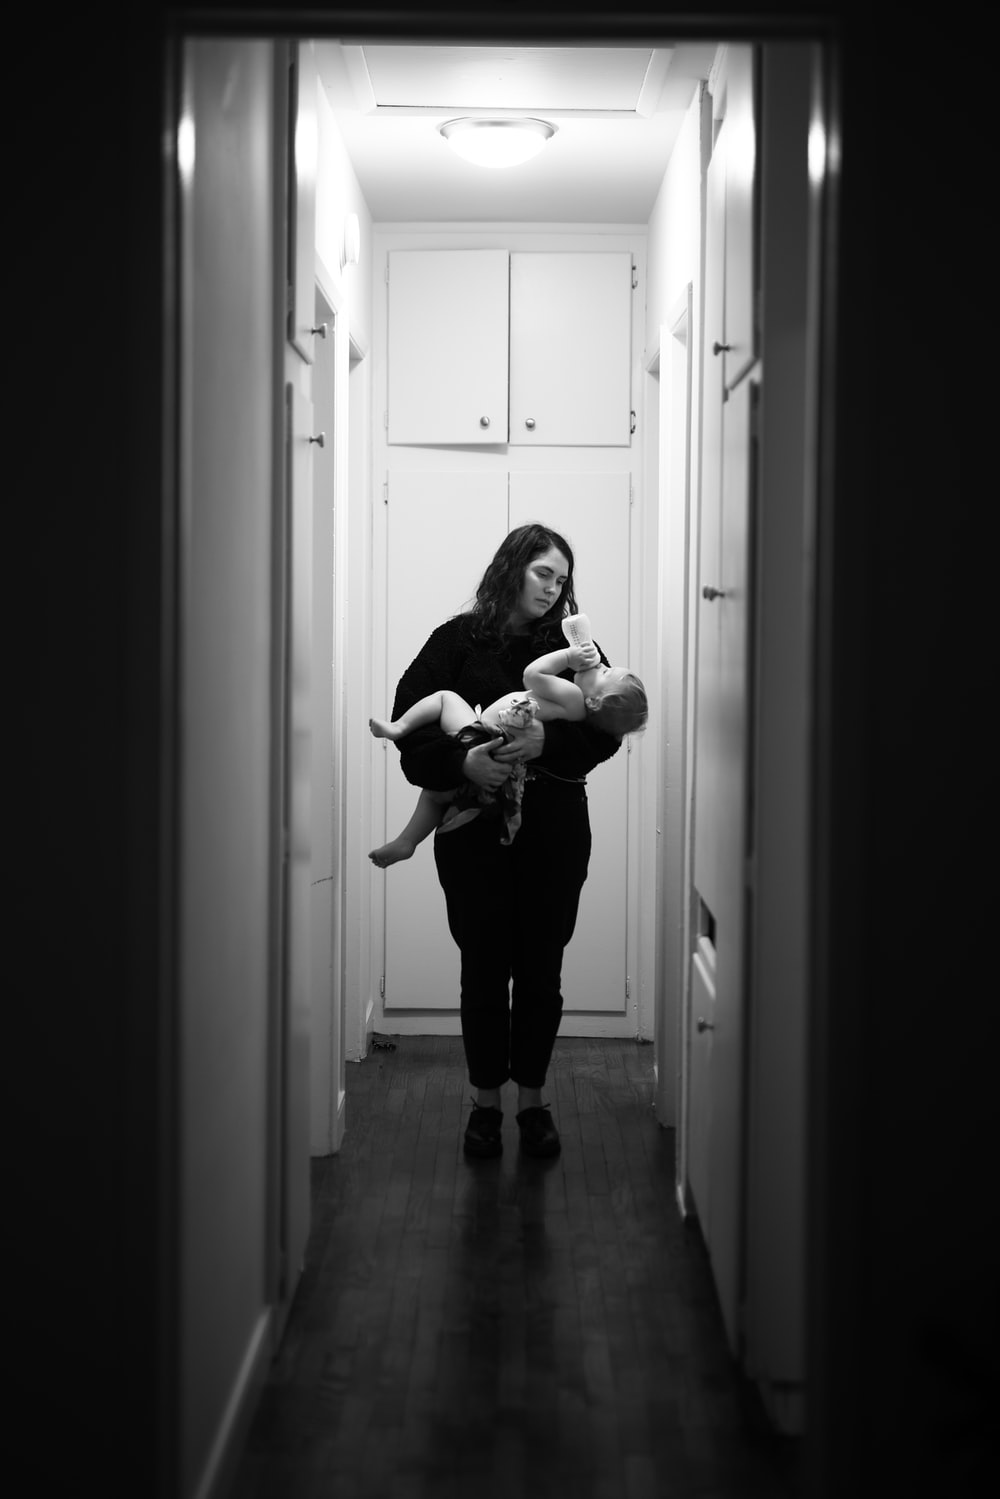 woman in black long sleeve shirt carrying baby in grayscale photography